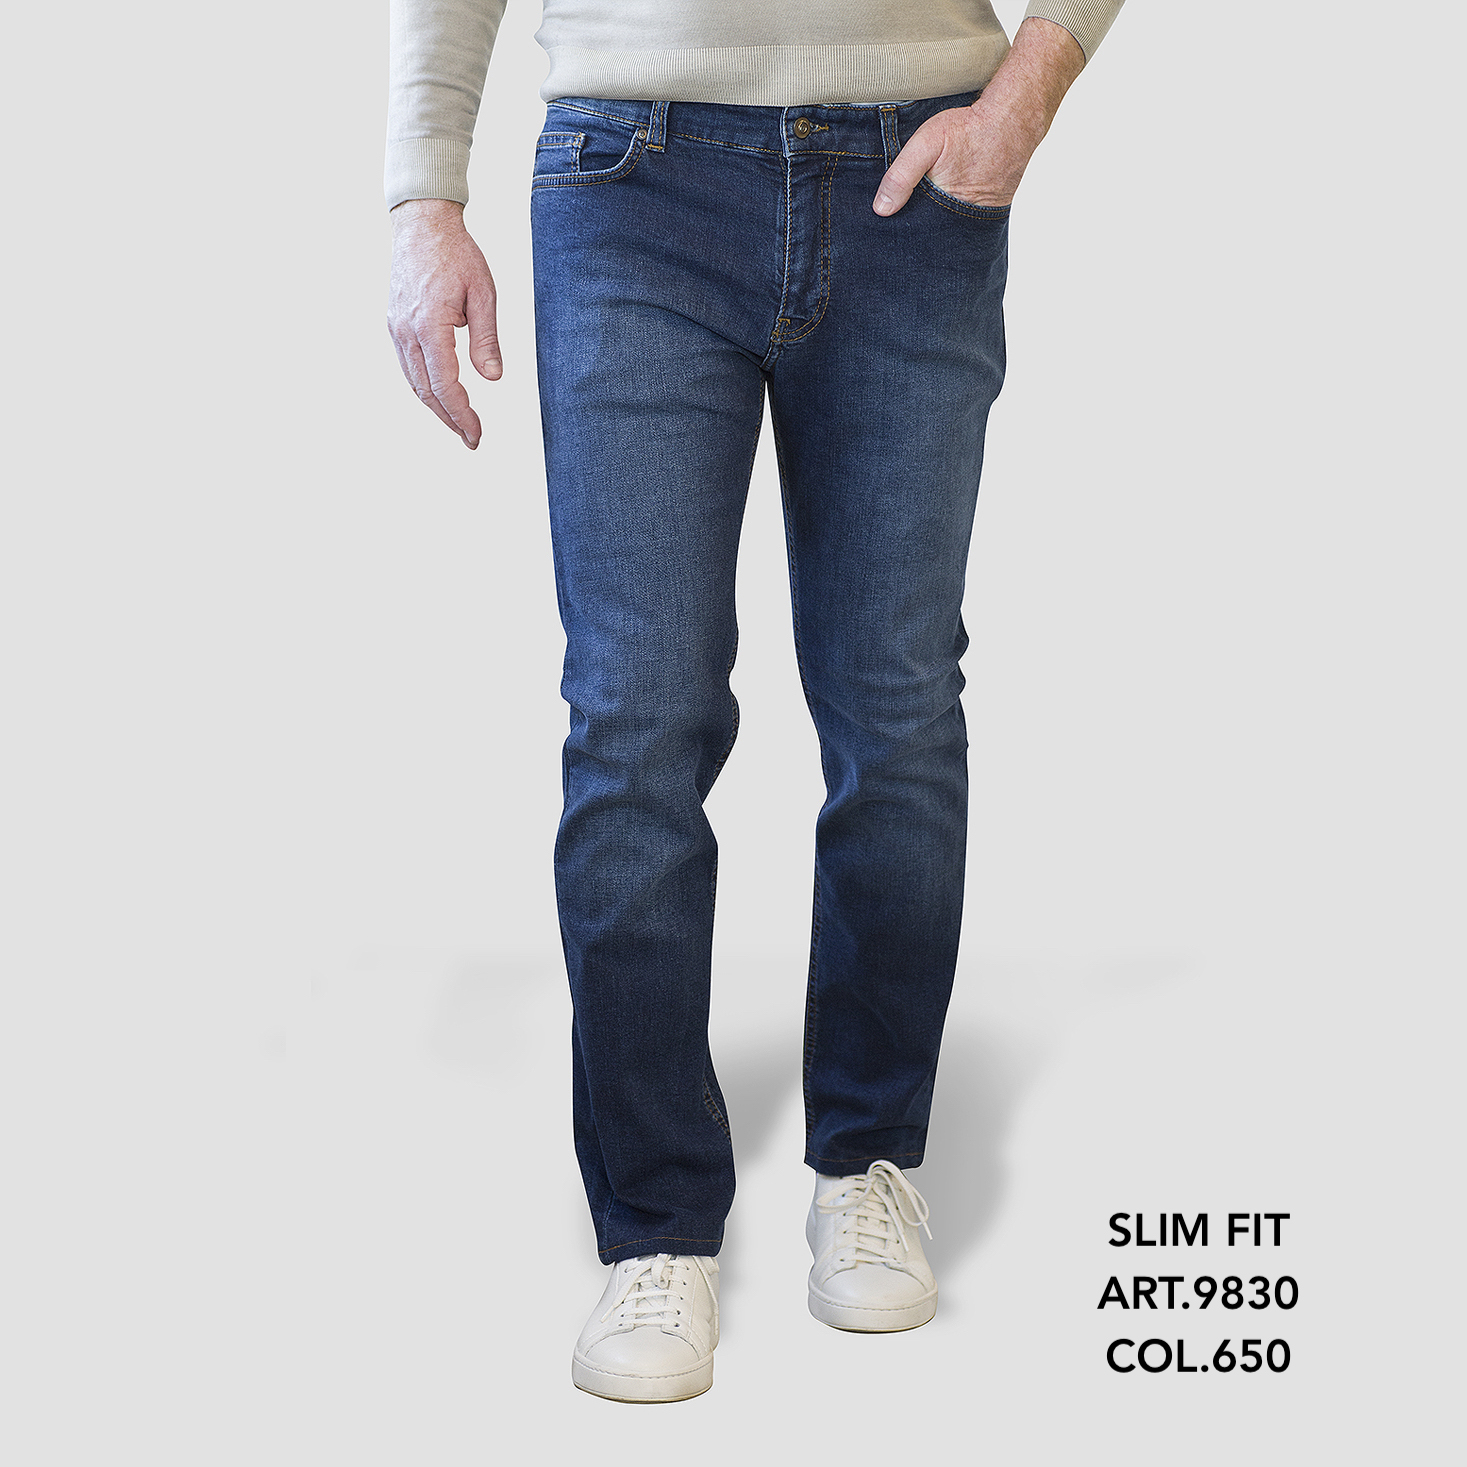 Slim Fit art.9830 col.650